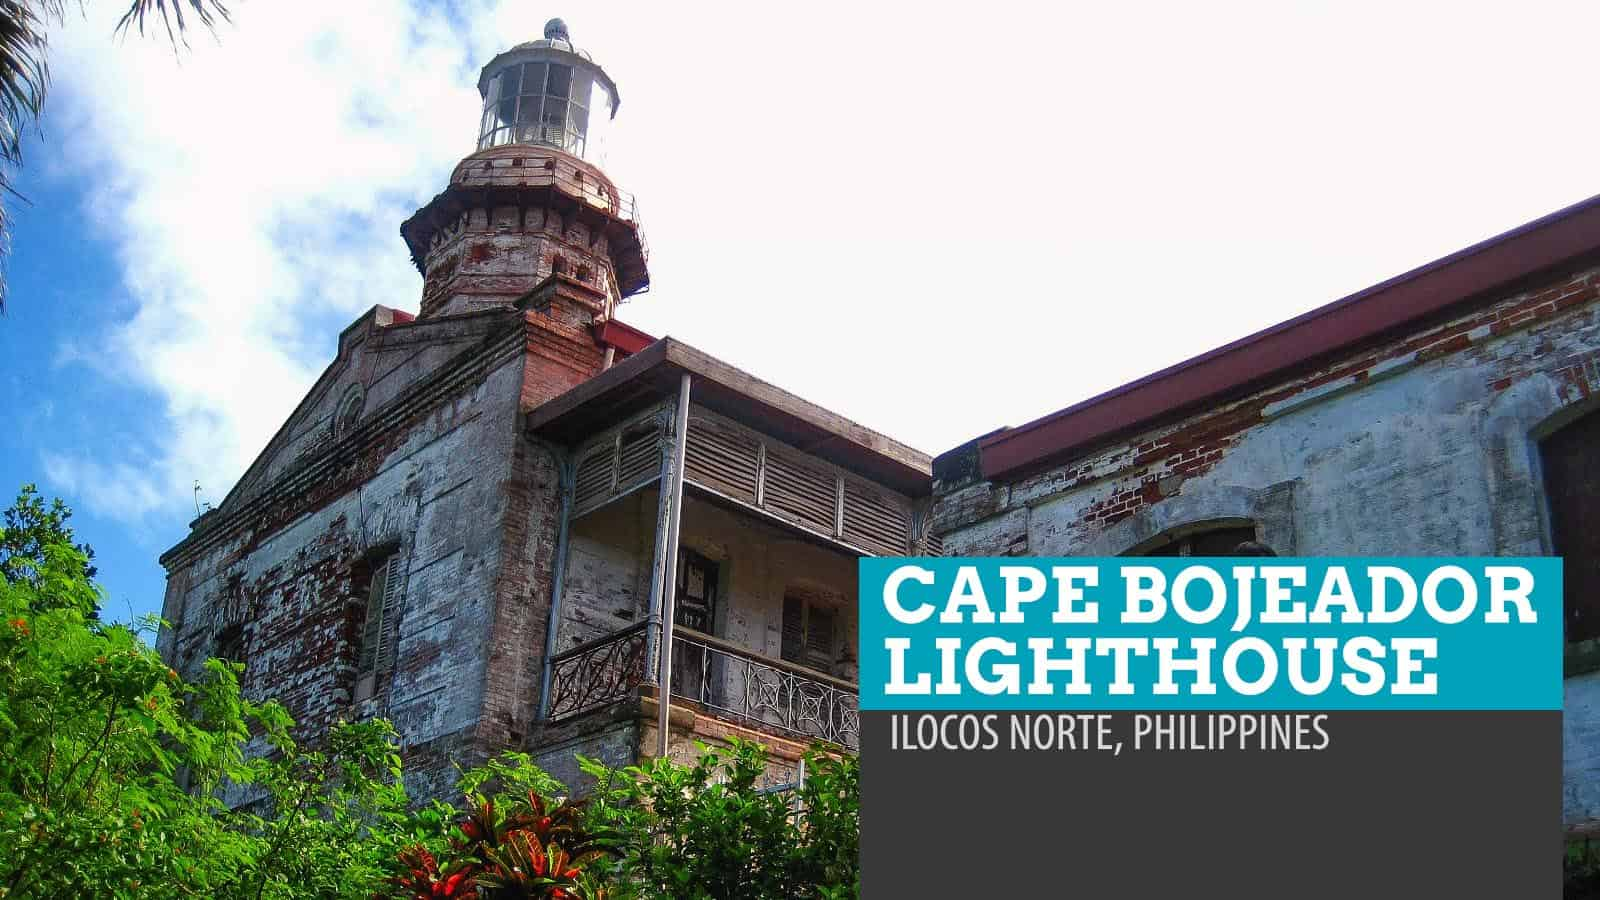 Cape Bojeador Lighthouse: Burgos, Ilocos Norte, Philippines